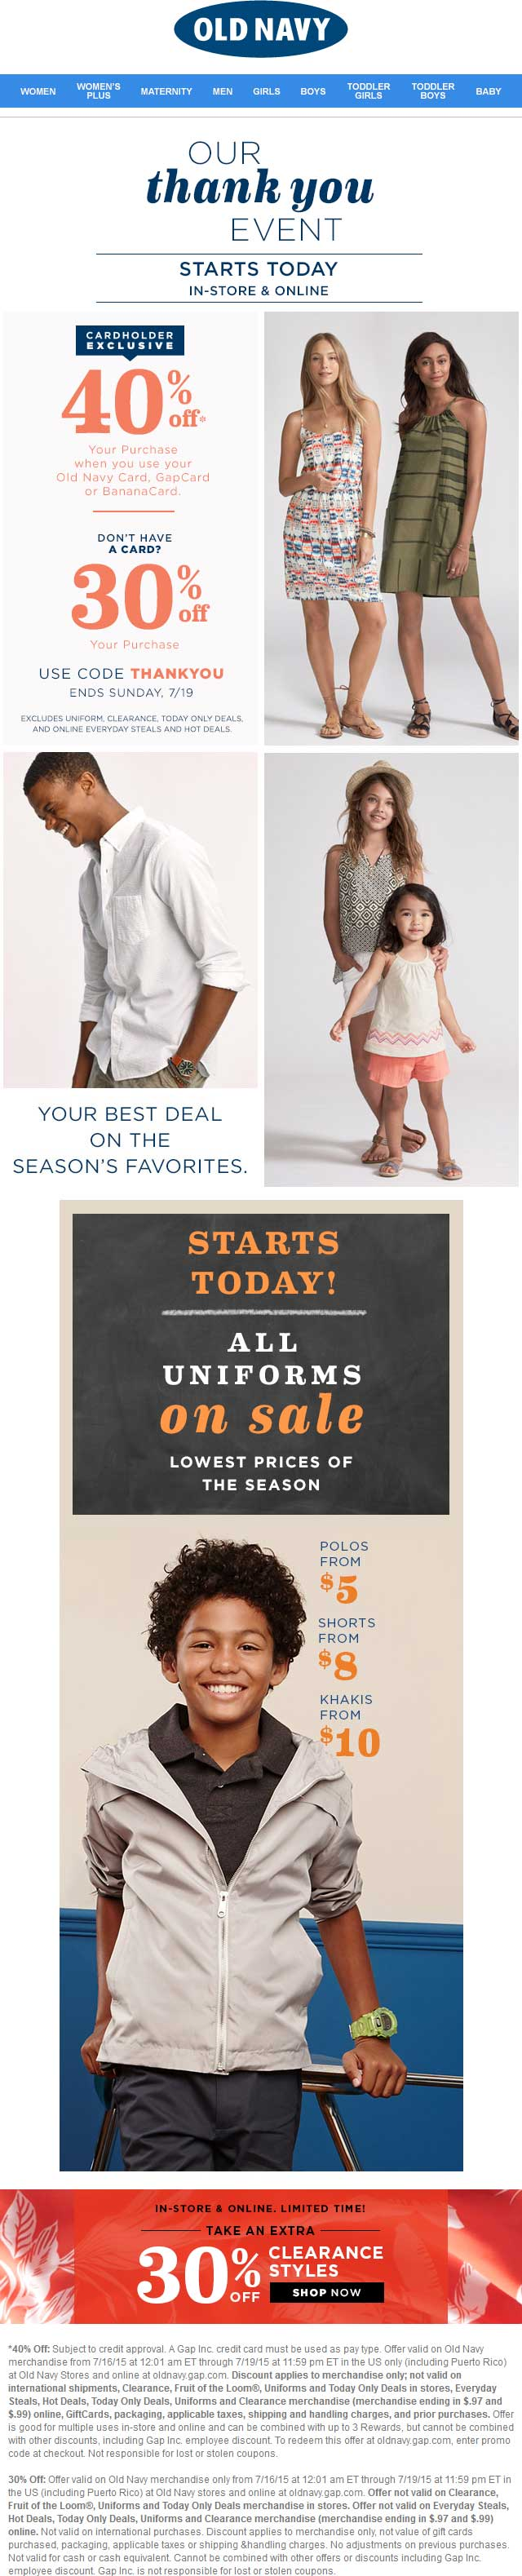 Old Navy Coupon August 2017 30% off at Old Navy, or online via promo code THANKYOU